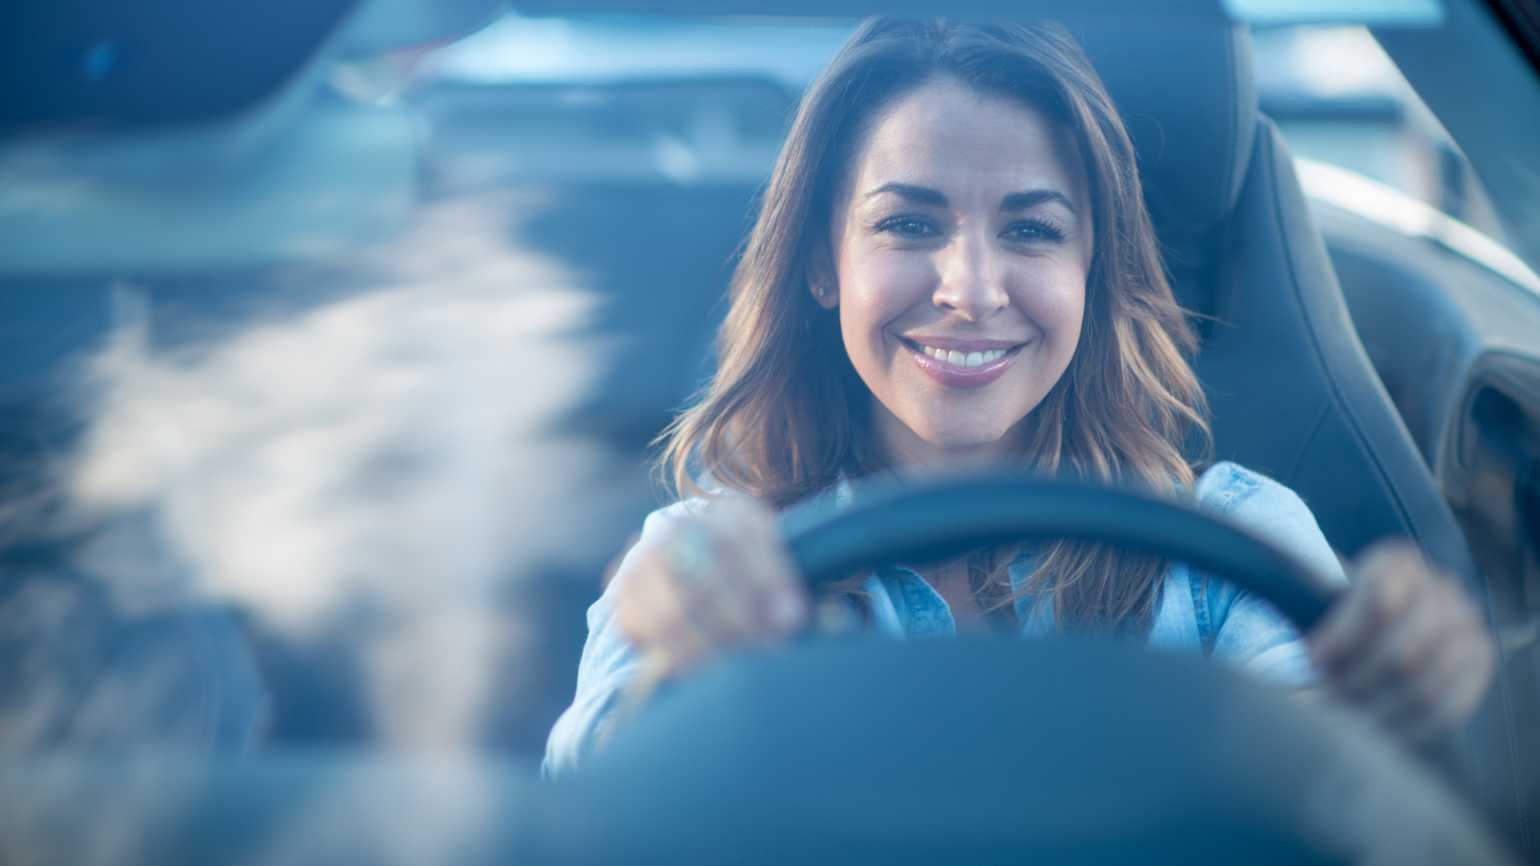 A smiling woman at the wheel of her car